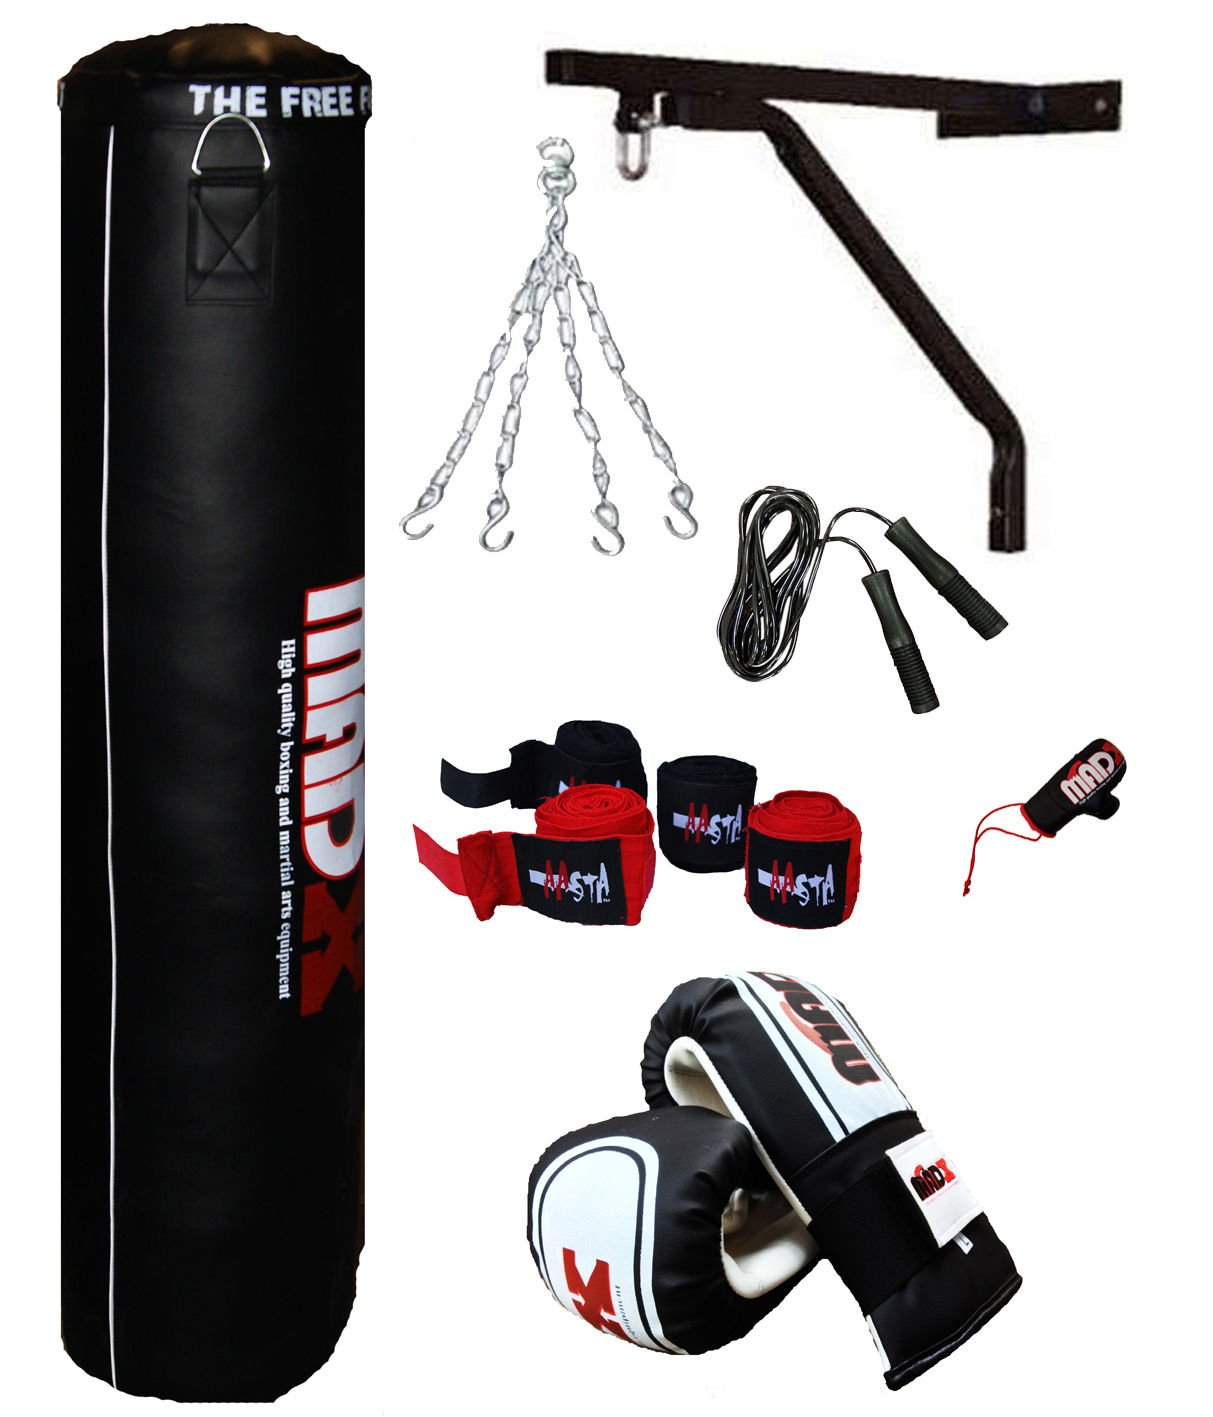 MADX 13 PIECE 4FT HEAVY FILLED PUNCH BAG BOXING SET INC GLOVES BRACKET CHAIN